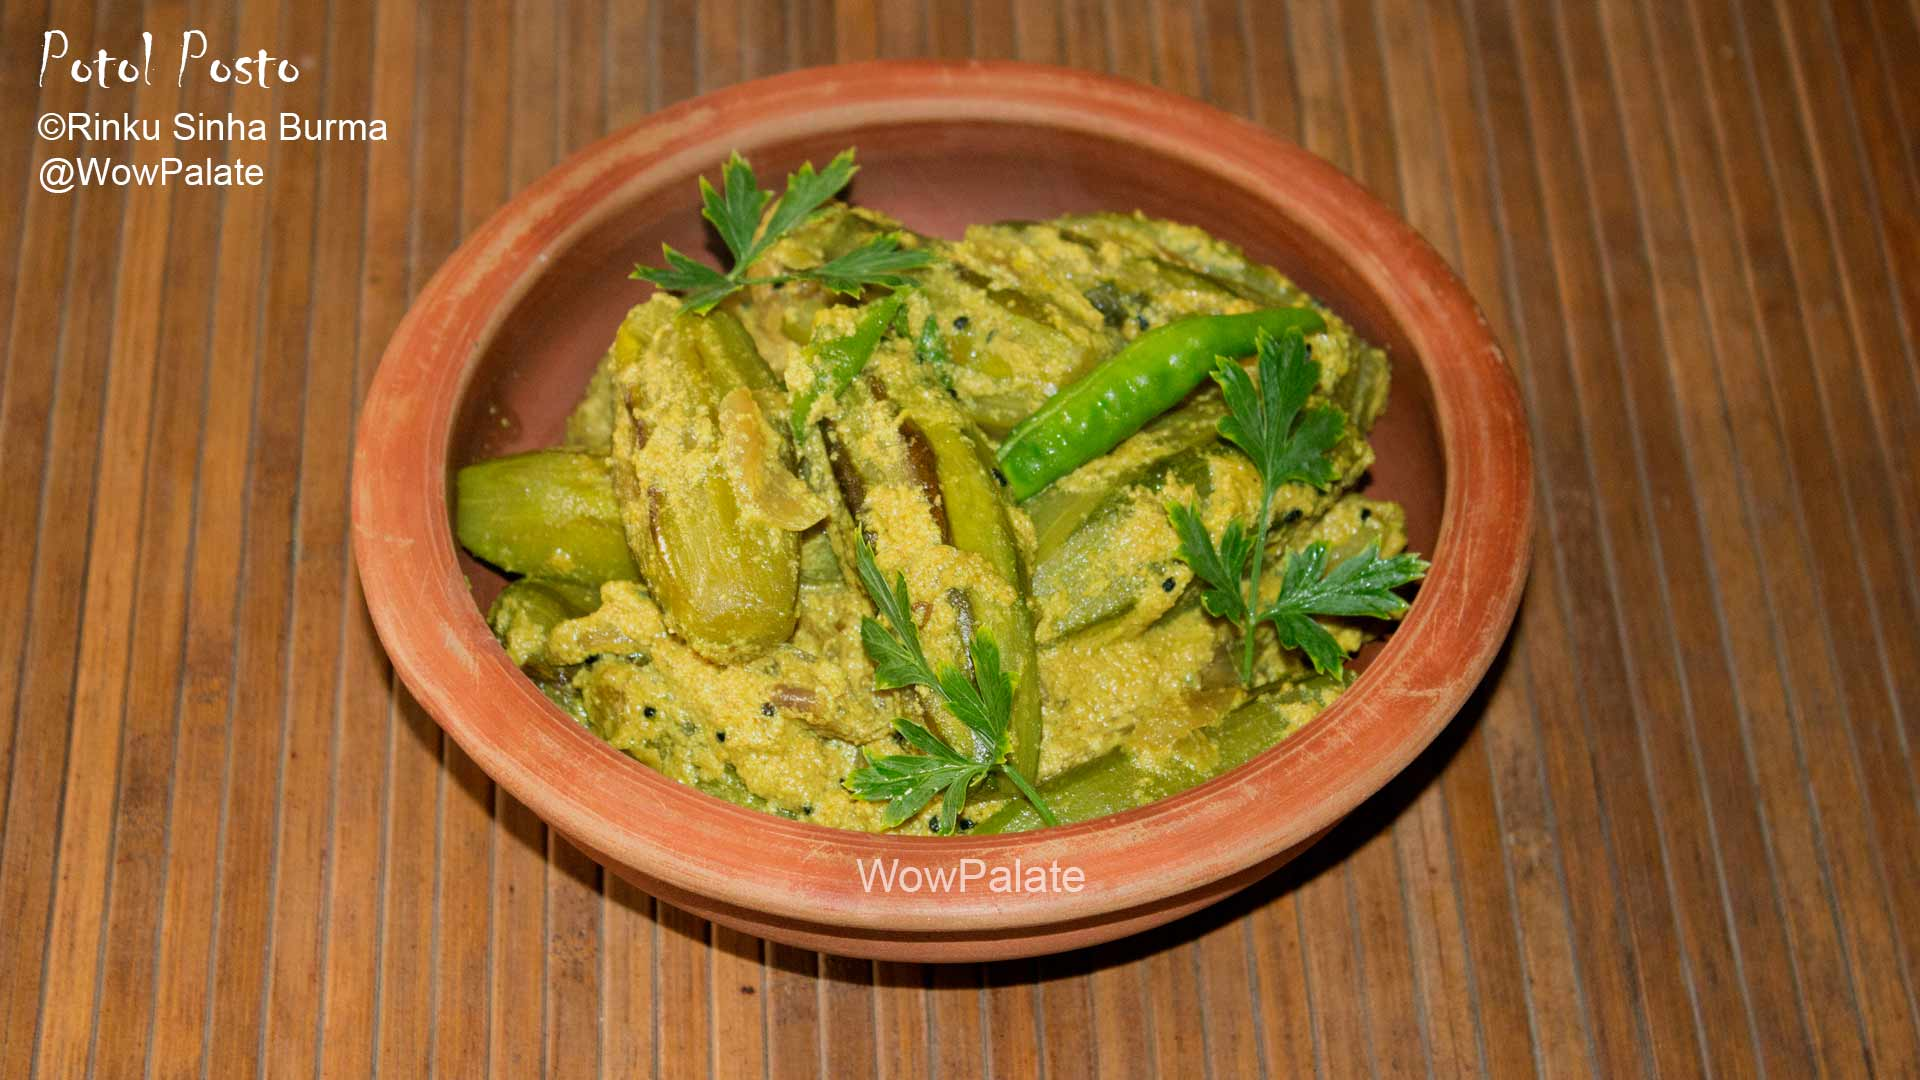 Potol Posto ( Parwal khas khas / Pointed gourd with poppy seeds )